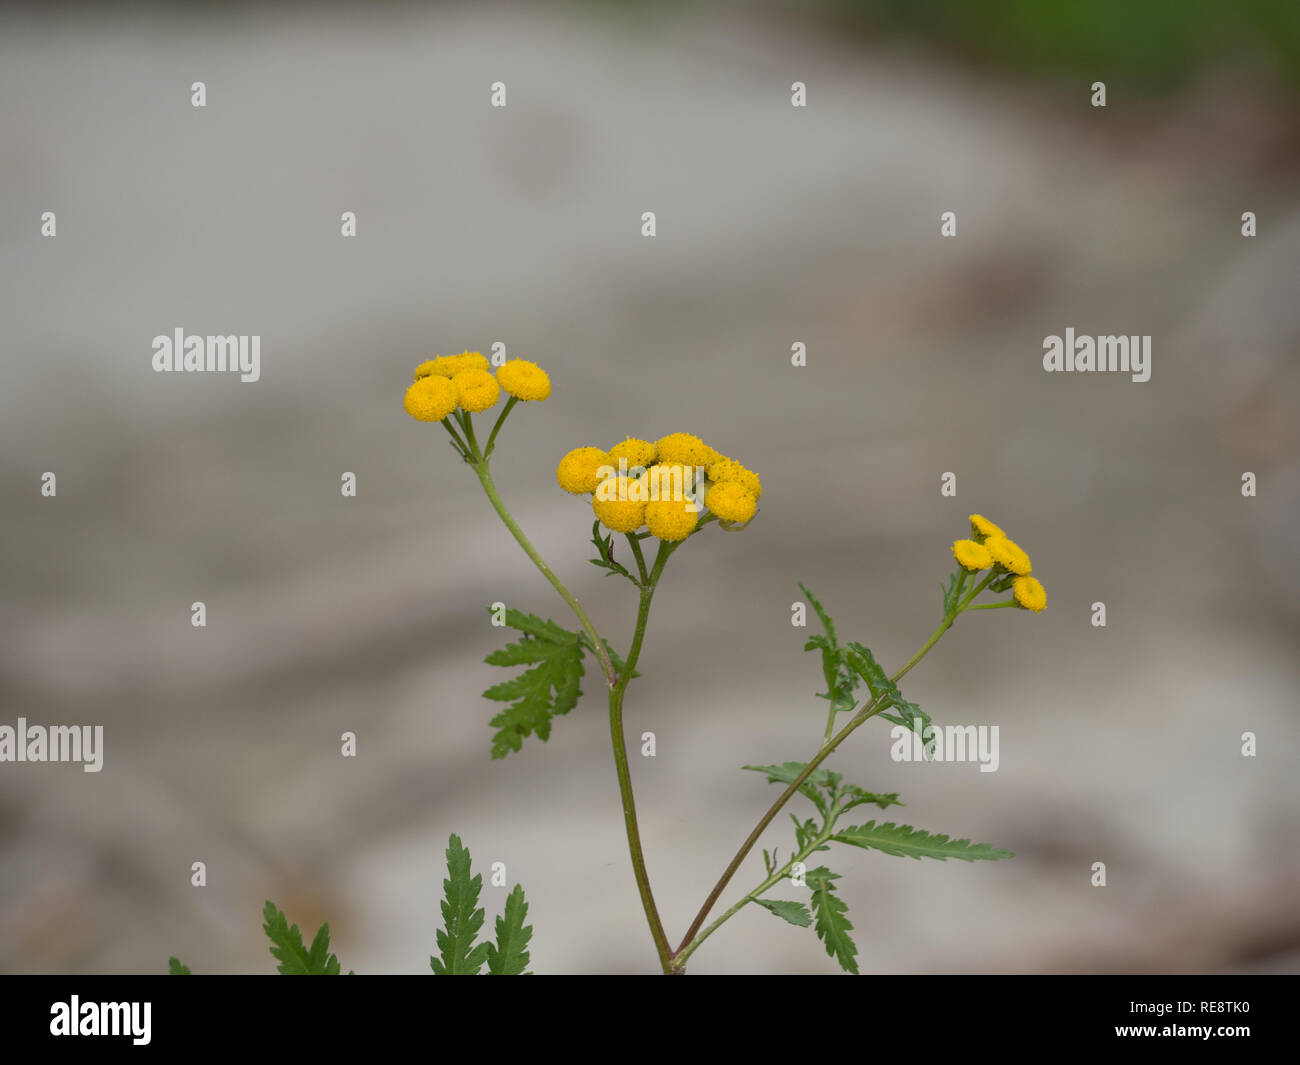 Herb common tansy - Stock Image